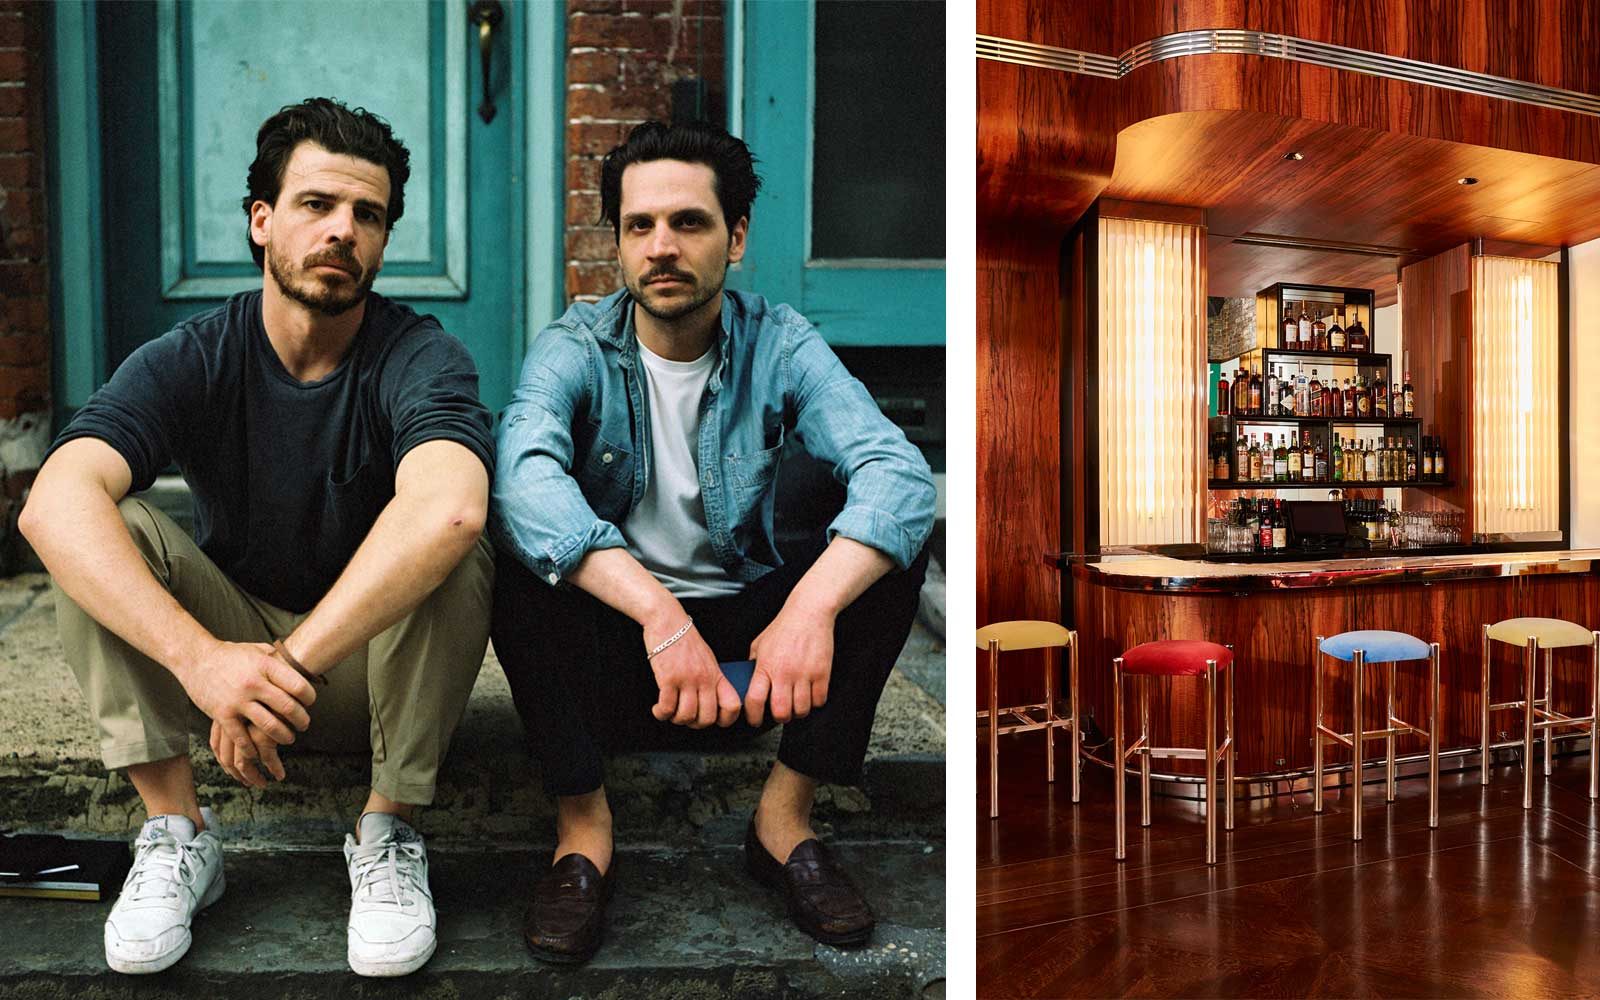 The 16 Best Things to Do in NYC, According to Two of the City's Rising Lifestyle Entrepreneurs (and Brothers)